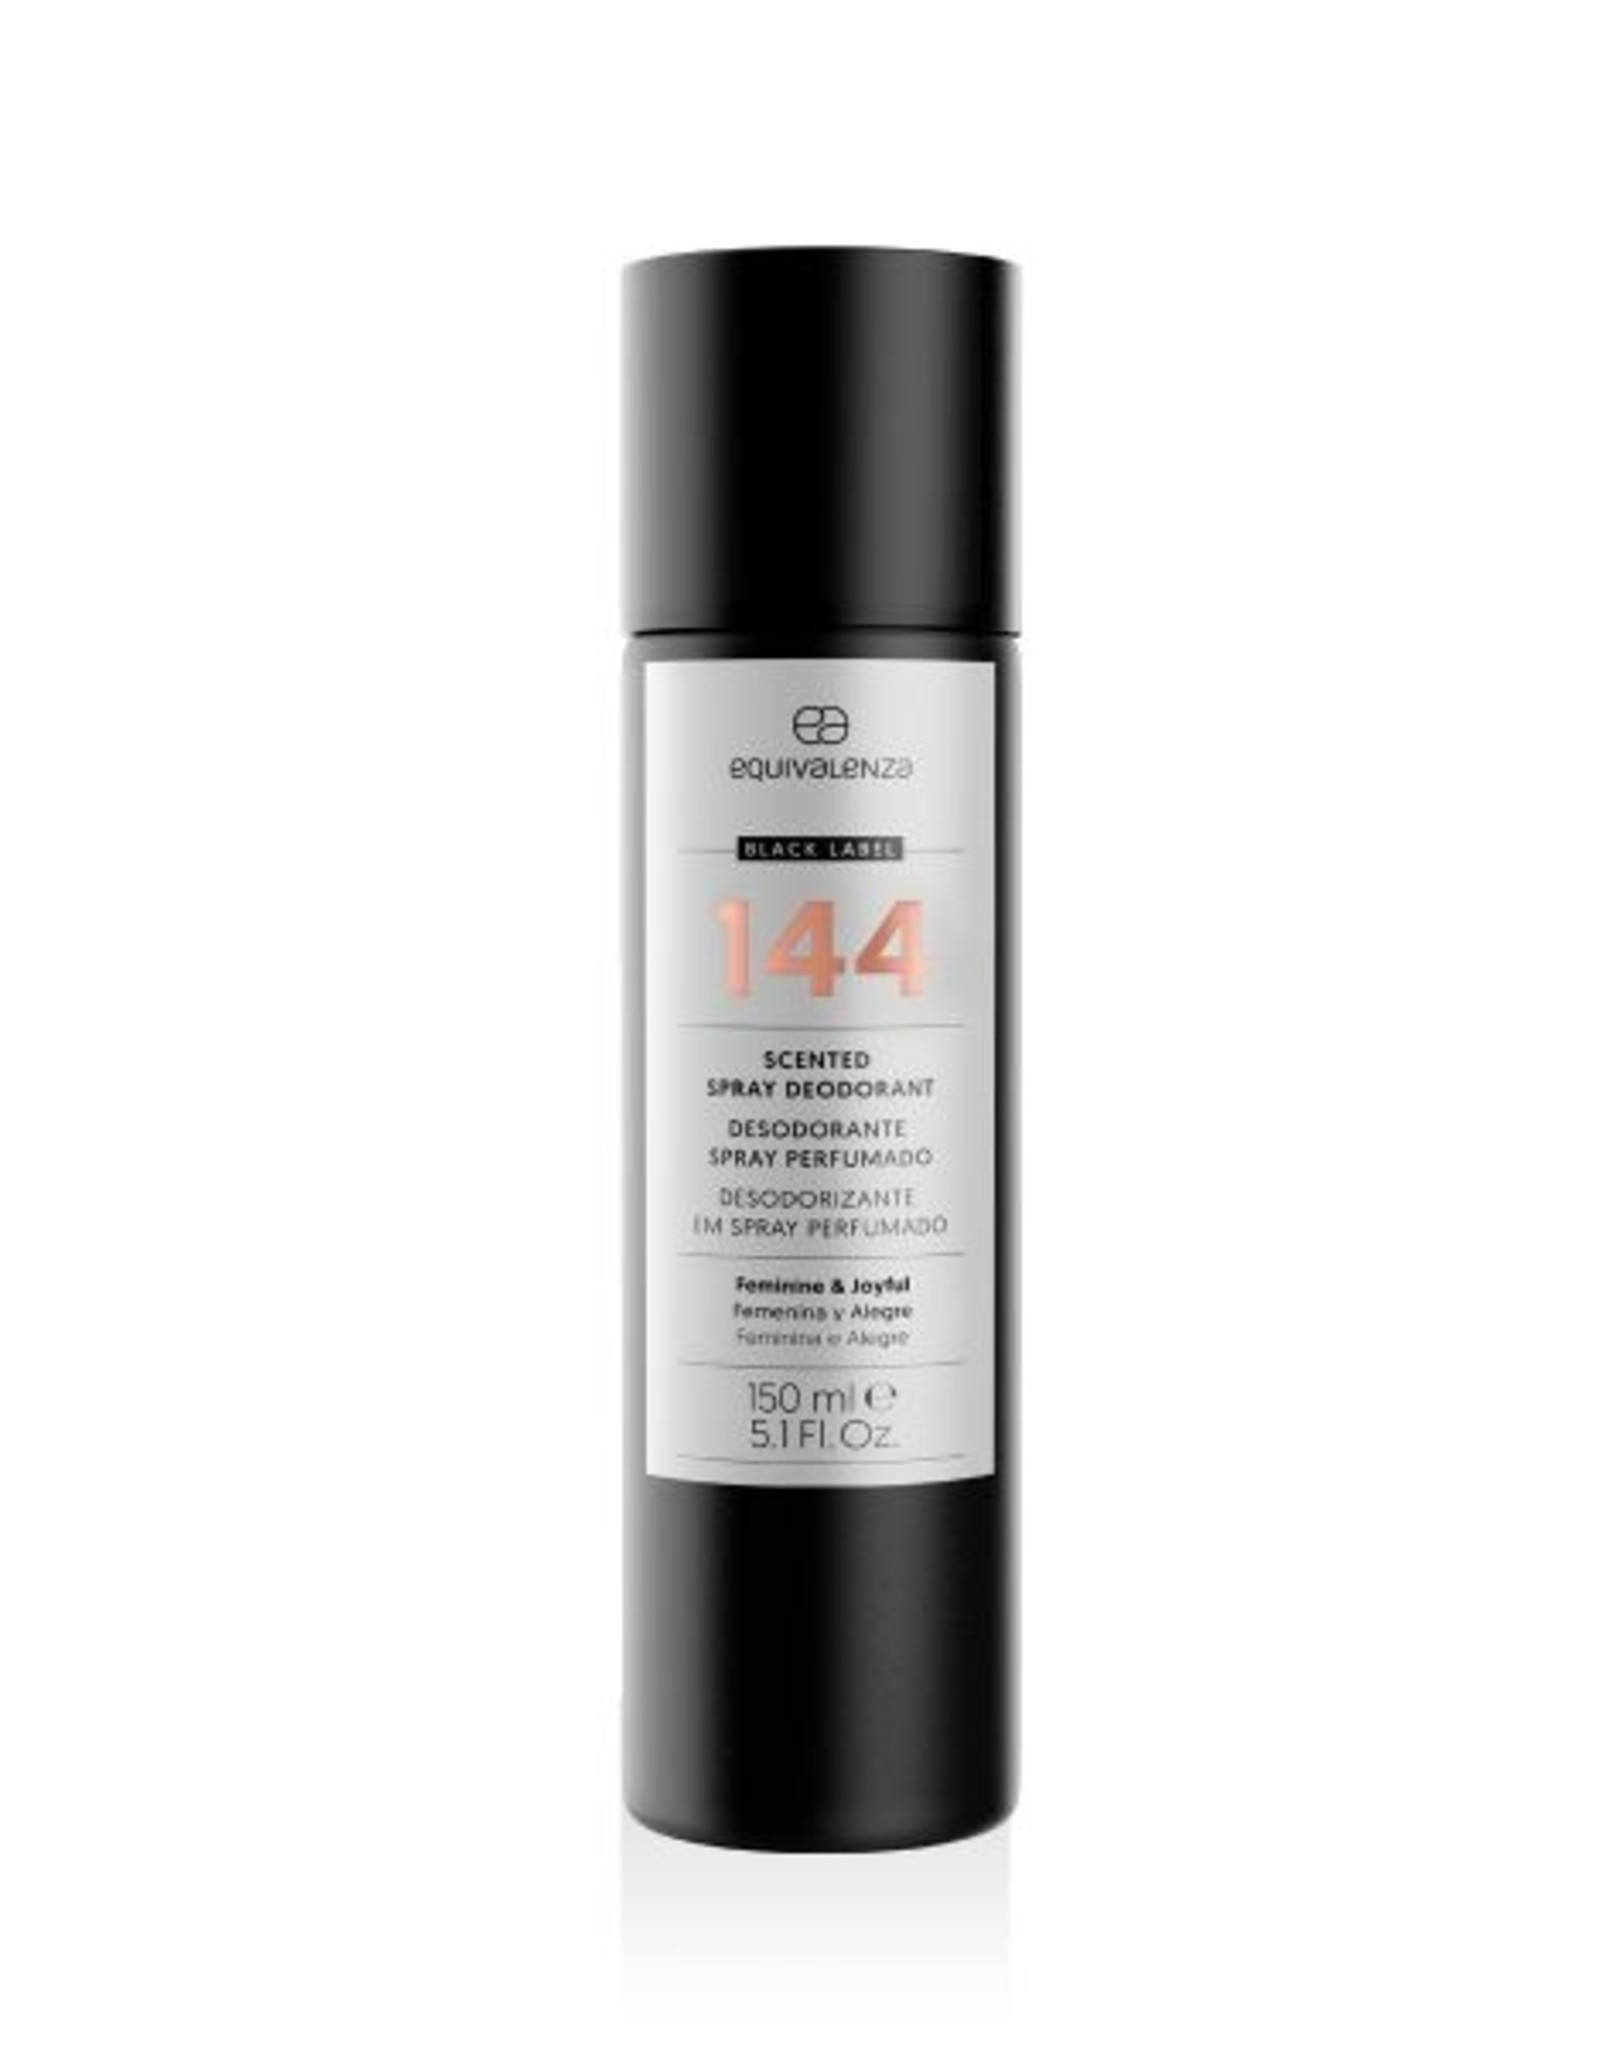 Equivalenza Black Label Deodorant 144